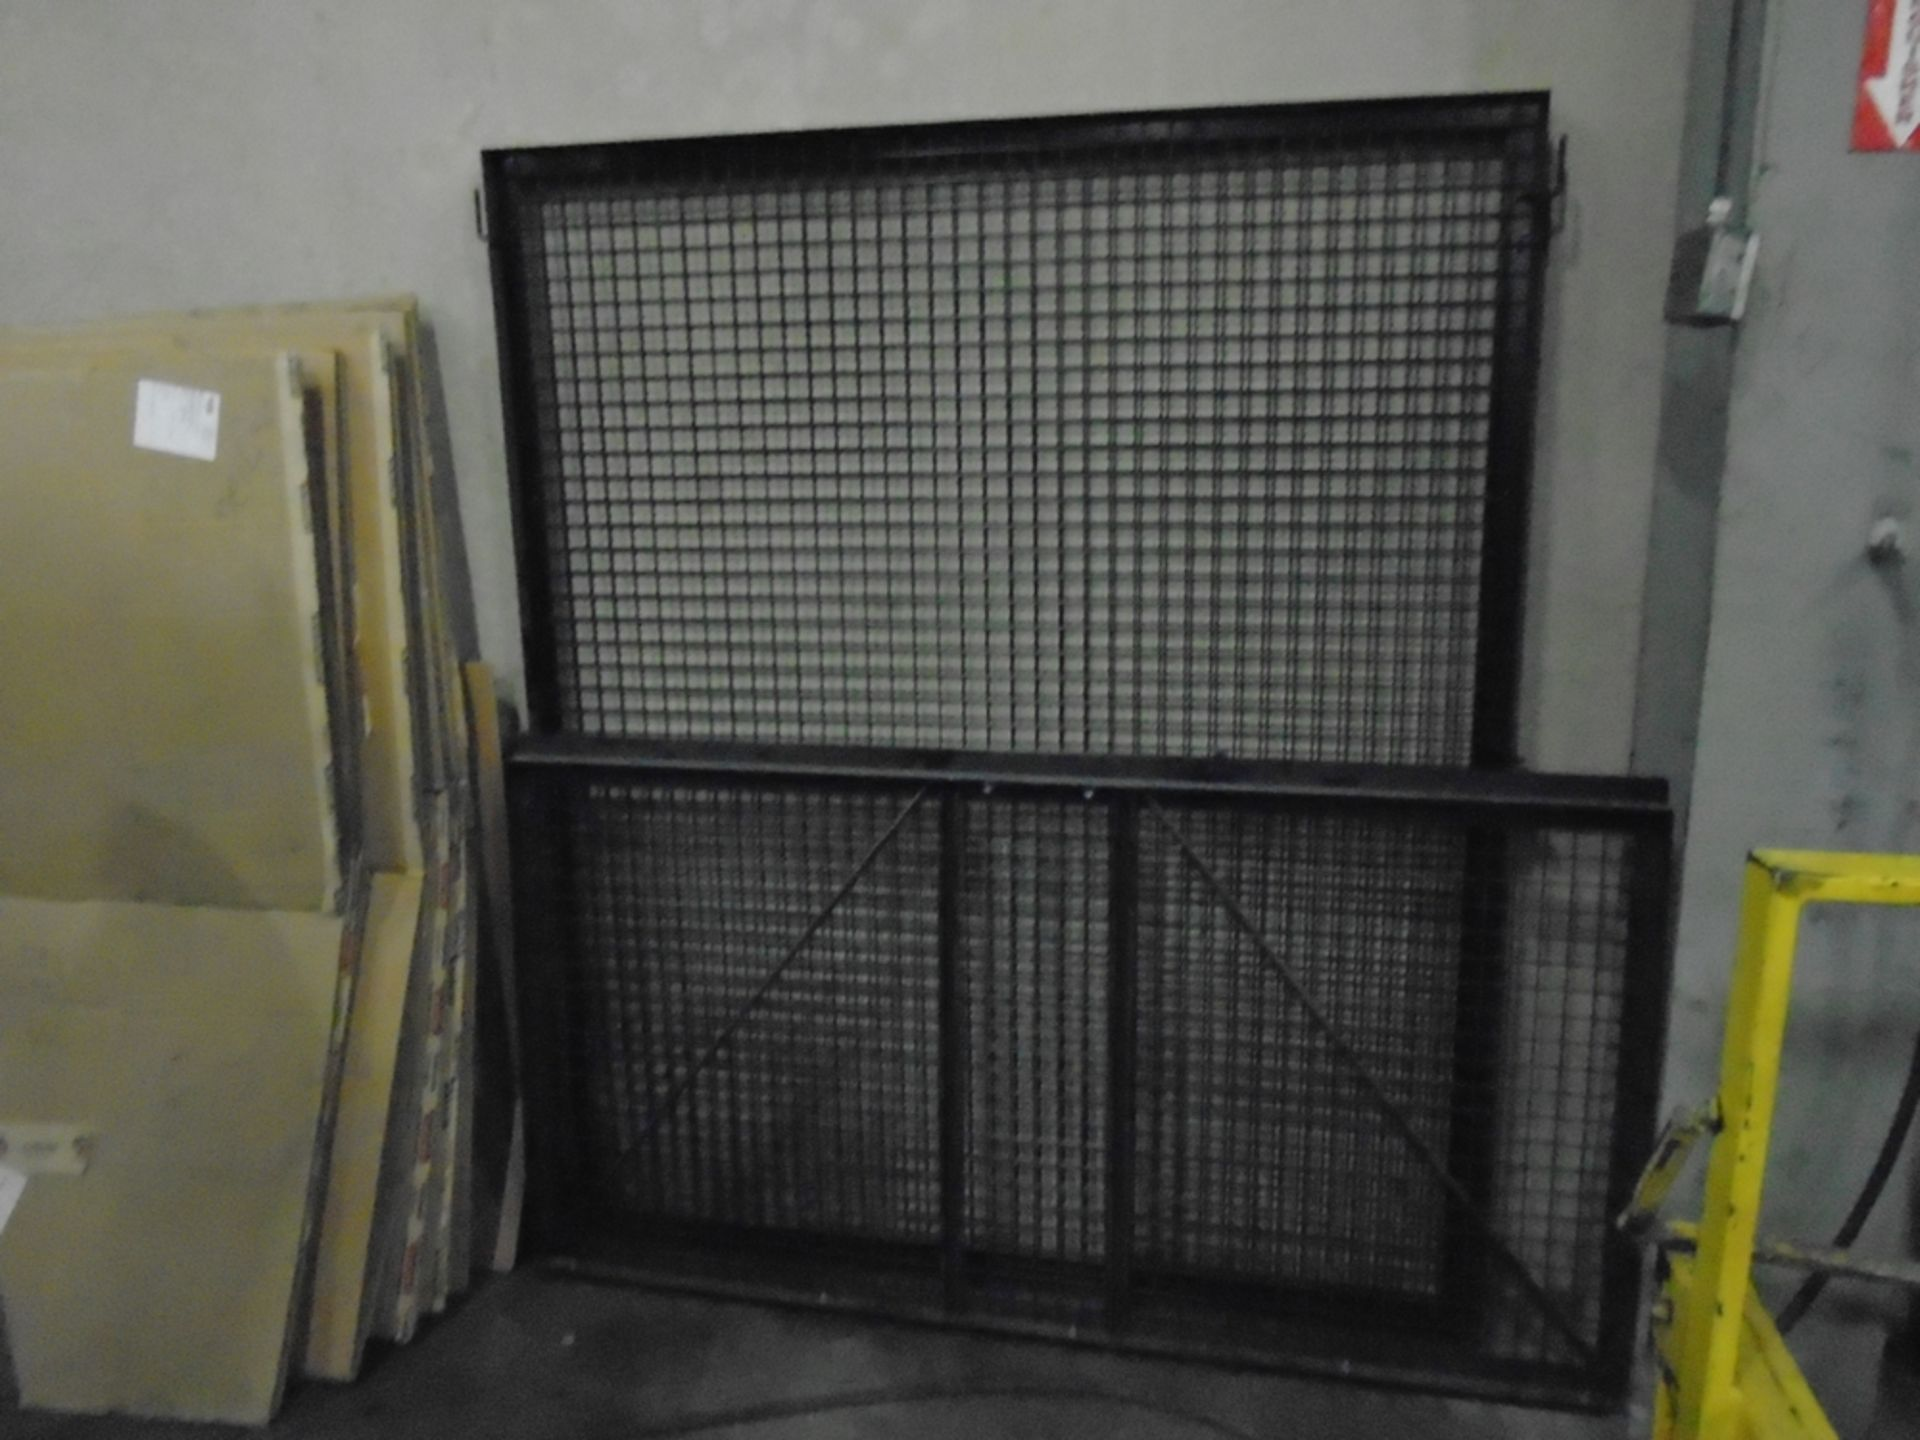 Lot 122A - Tool Crib Cage Steel Double 5' W x 6' H Gate With One 3' W x 6' H Door New